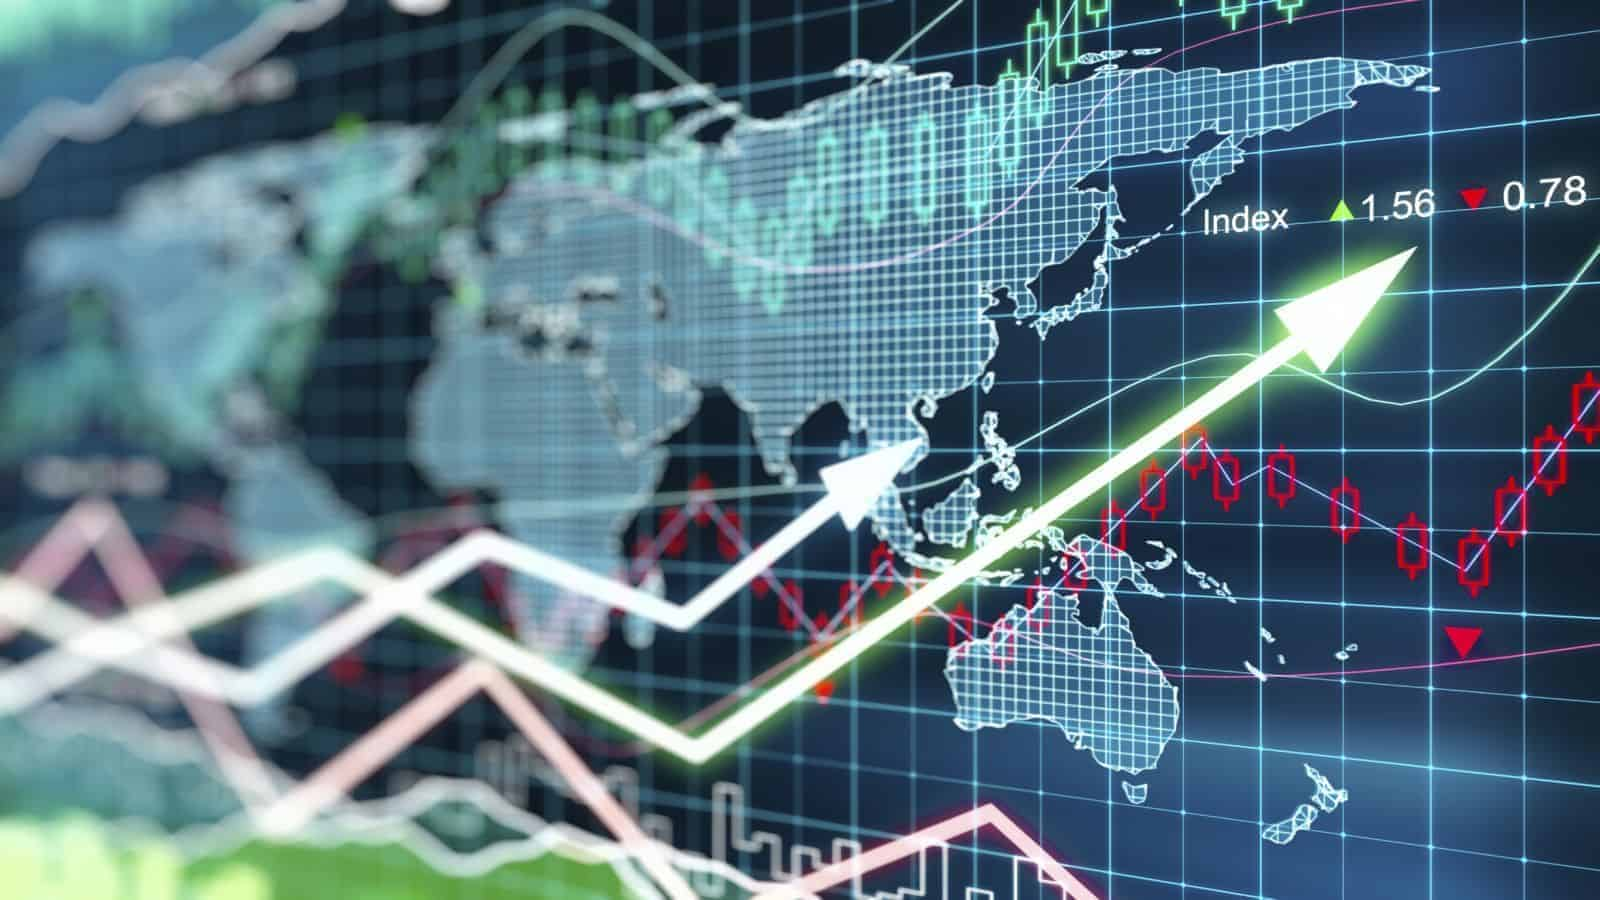 ASX 200 lunch time report: Bega, Costa, & NAB shares higher | Motley